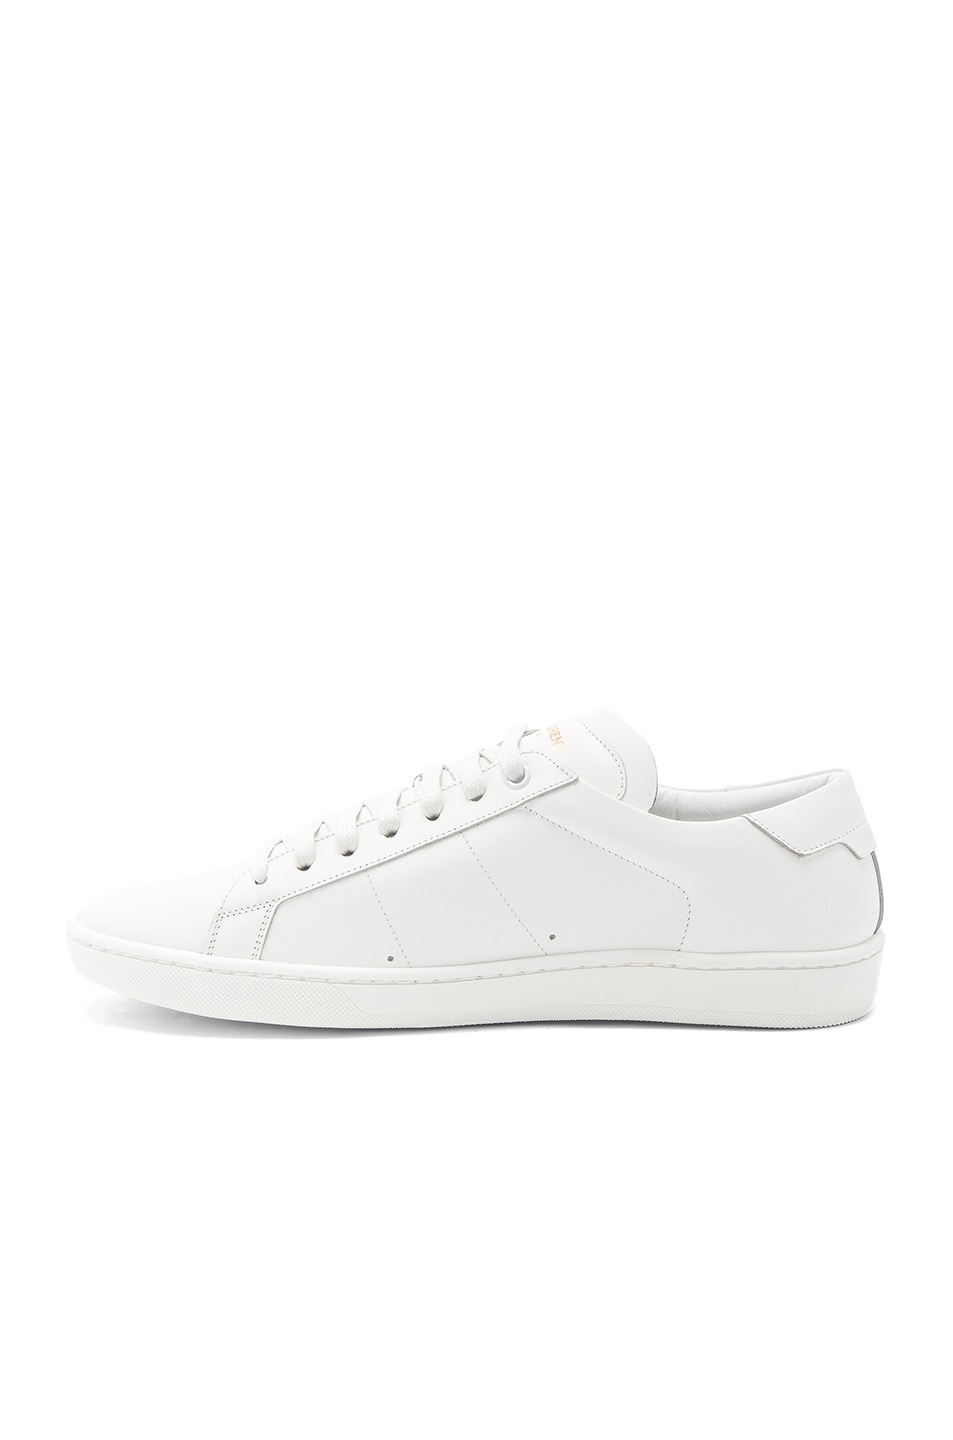 Image 5 of Saint Laurent Court Classic SL/01 Sneakers in White